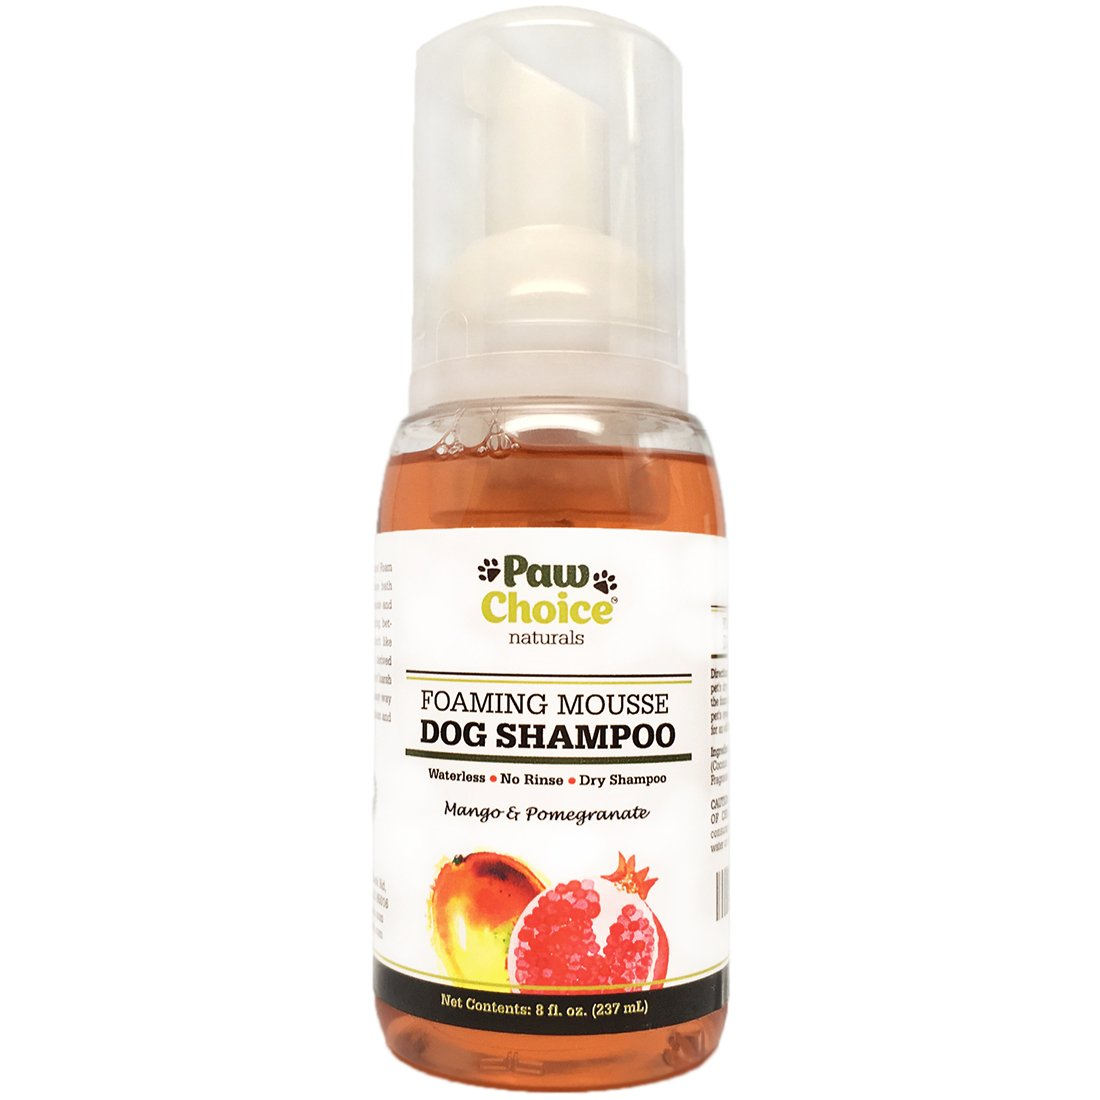 Paw Choice Dry Dog Shampoo, Waterless, No Rinse Foam Mousse - for Bathless Cleaning of Coat and Removing Pet Odor - Mango and Pomegranate Scent, Natural with No Harsh Detergents, Made in USA